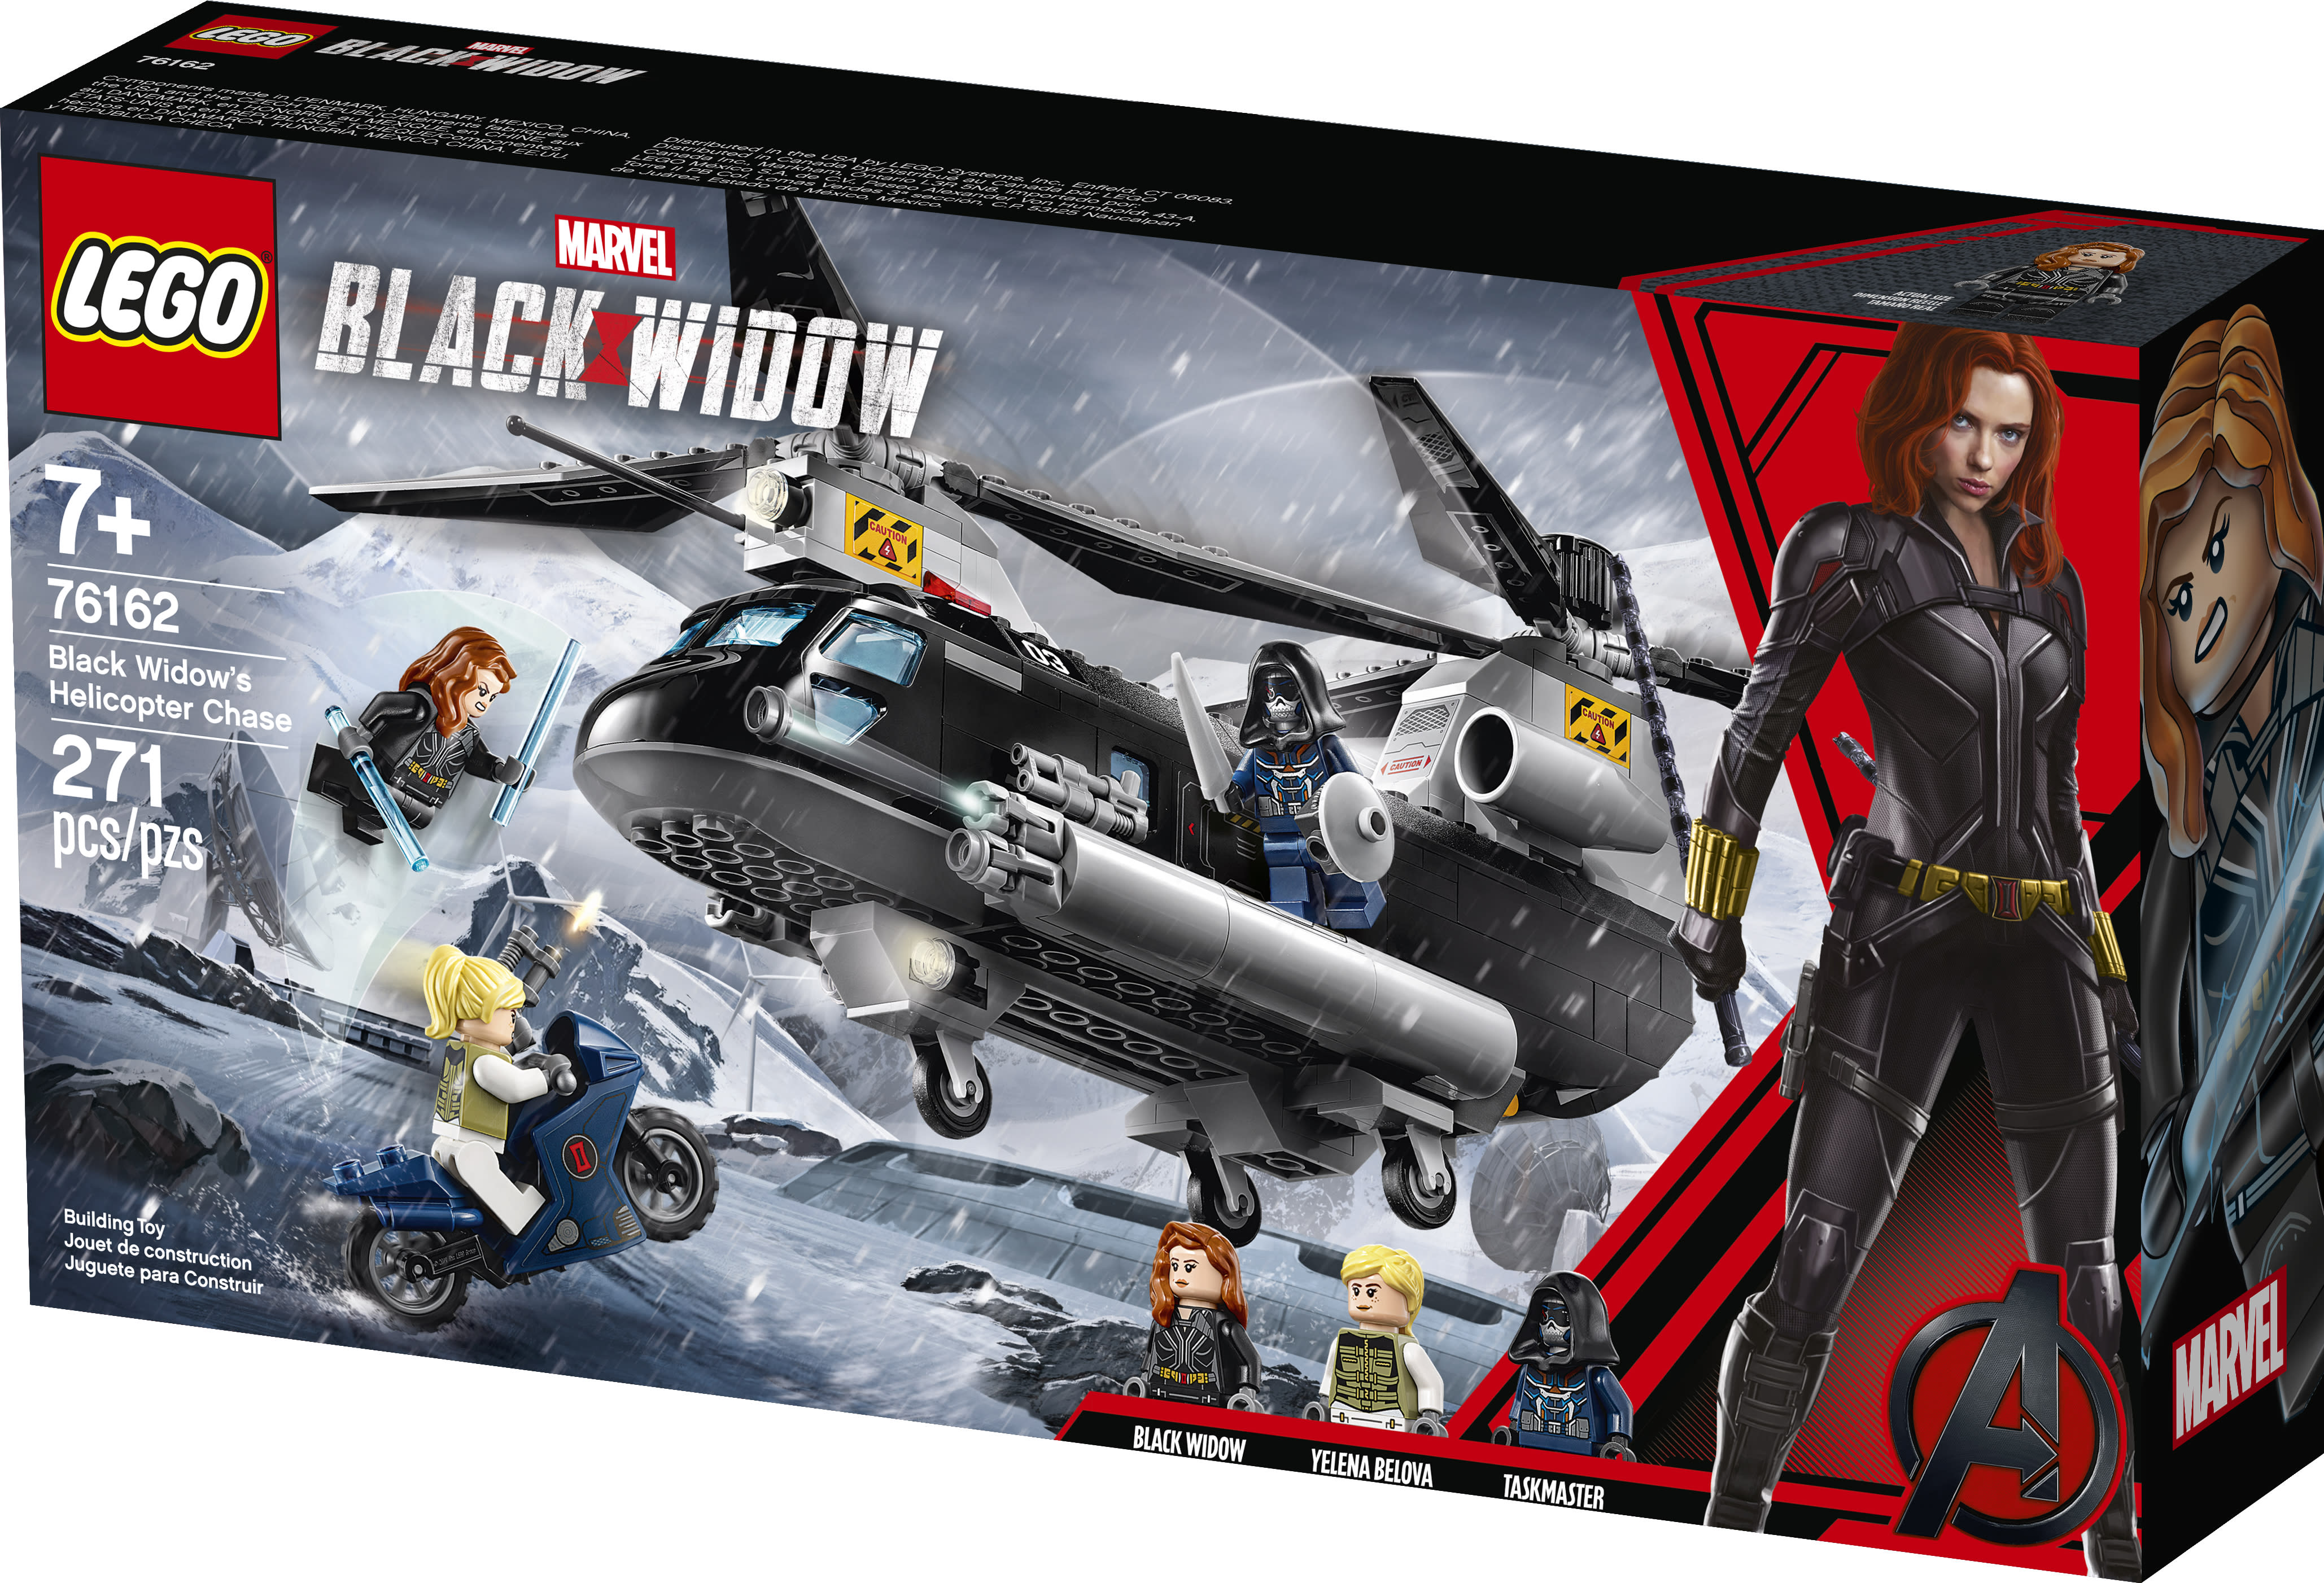 Exclusive first look at 'Black Widow' merchandise, from Funko and Lego to Adidas and body pillows